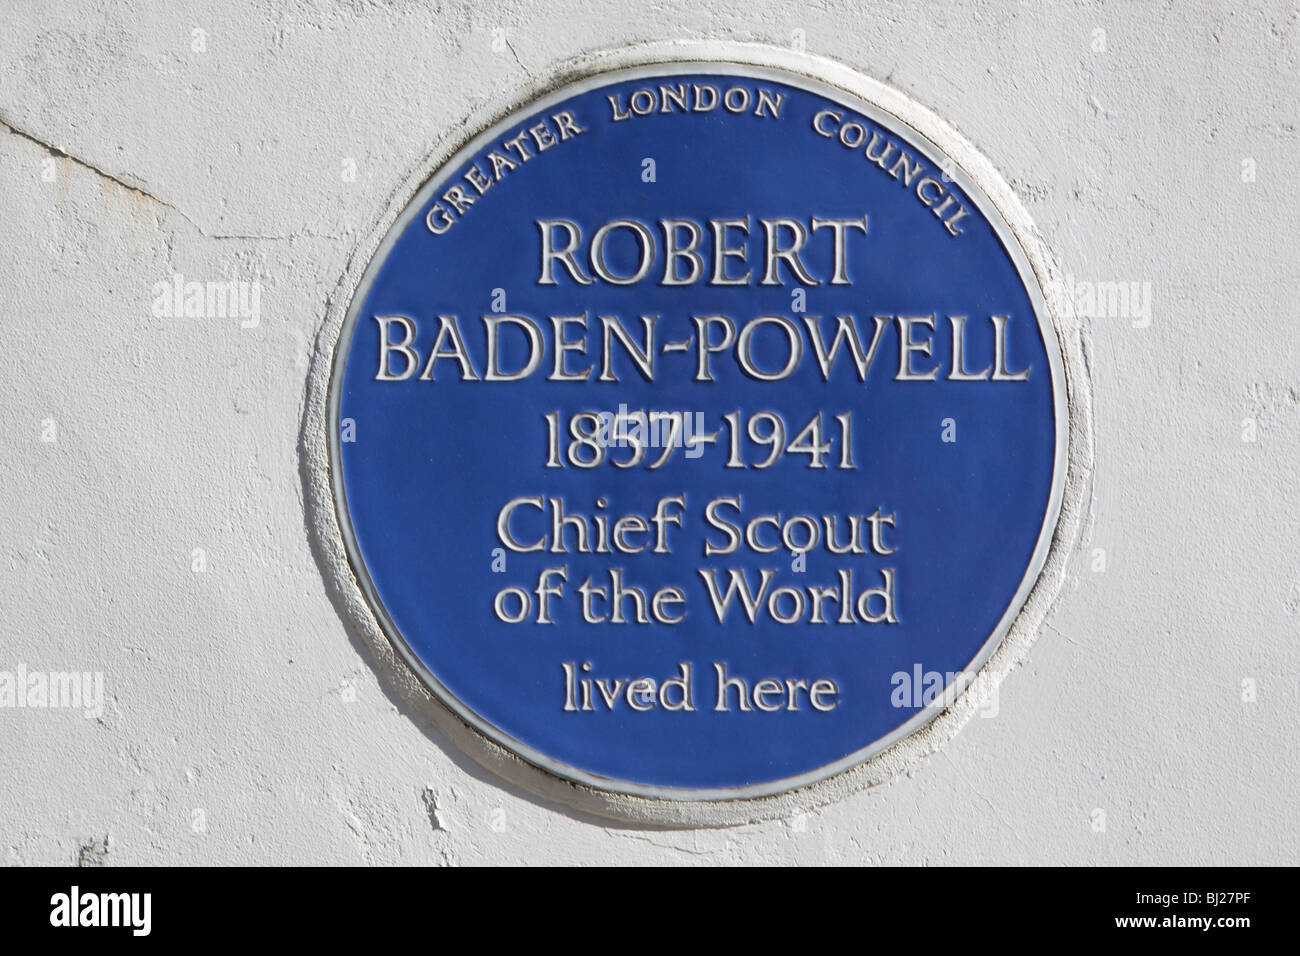 Blue Plaque Dedicated to Robert Baden Powell the Chief Scout of the World - Stock Image